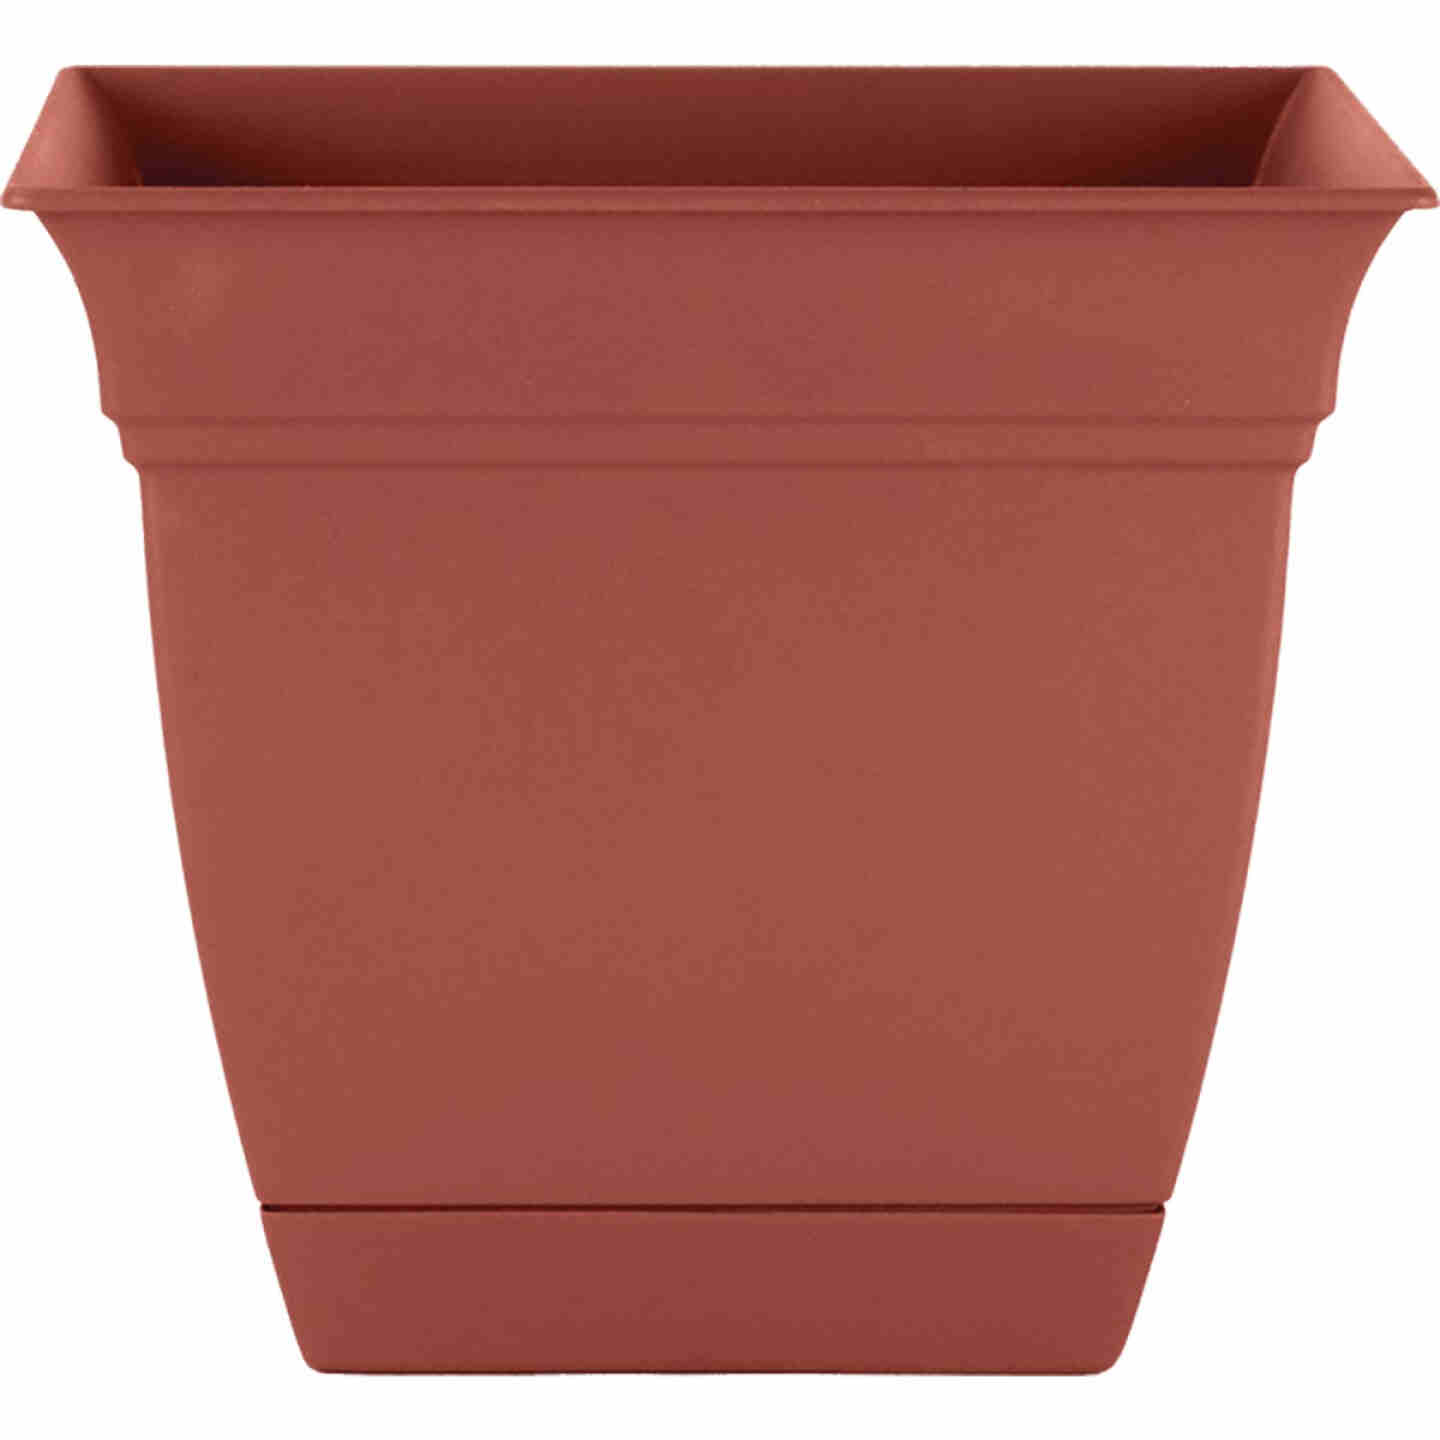 HC Companies Eclipse 12 In. x 12 In. x 10.50 In. Resin Clay Planter Image 1